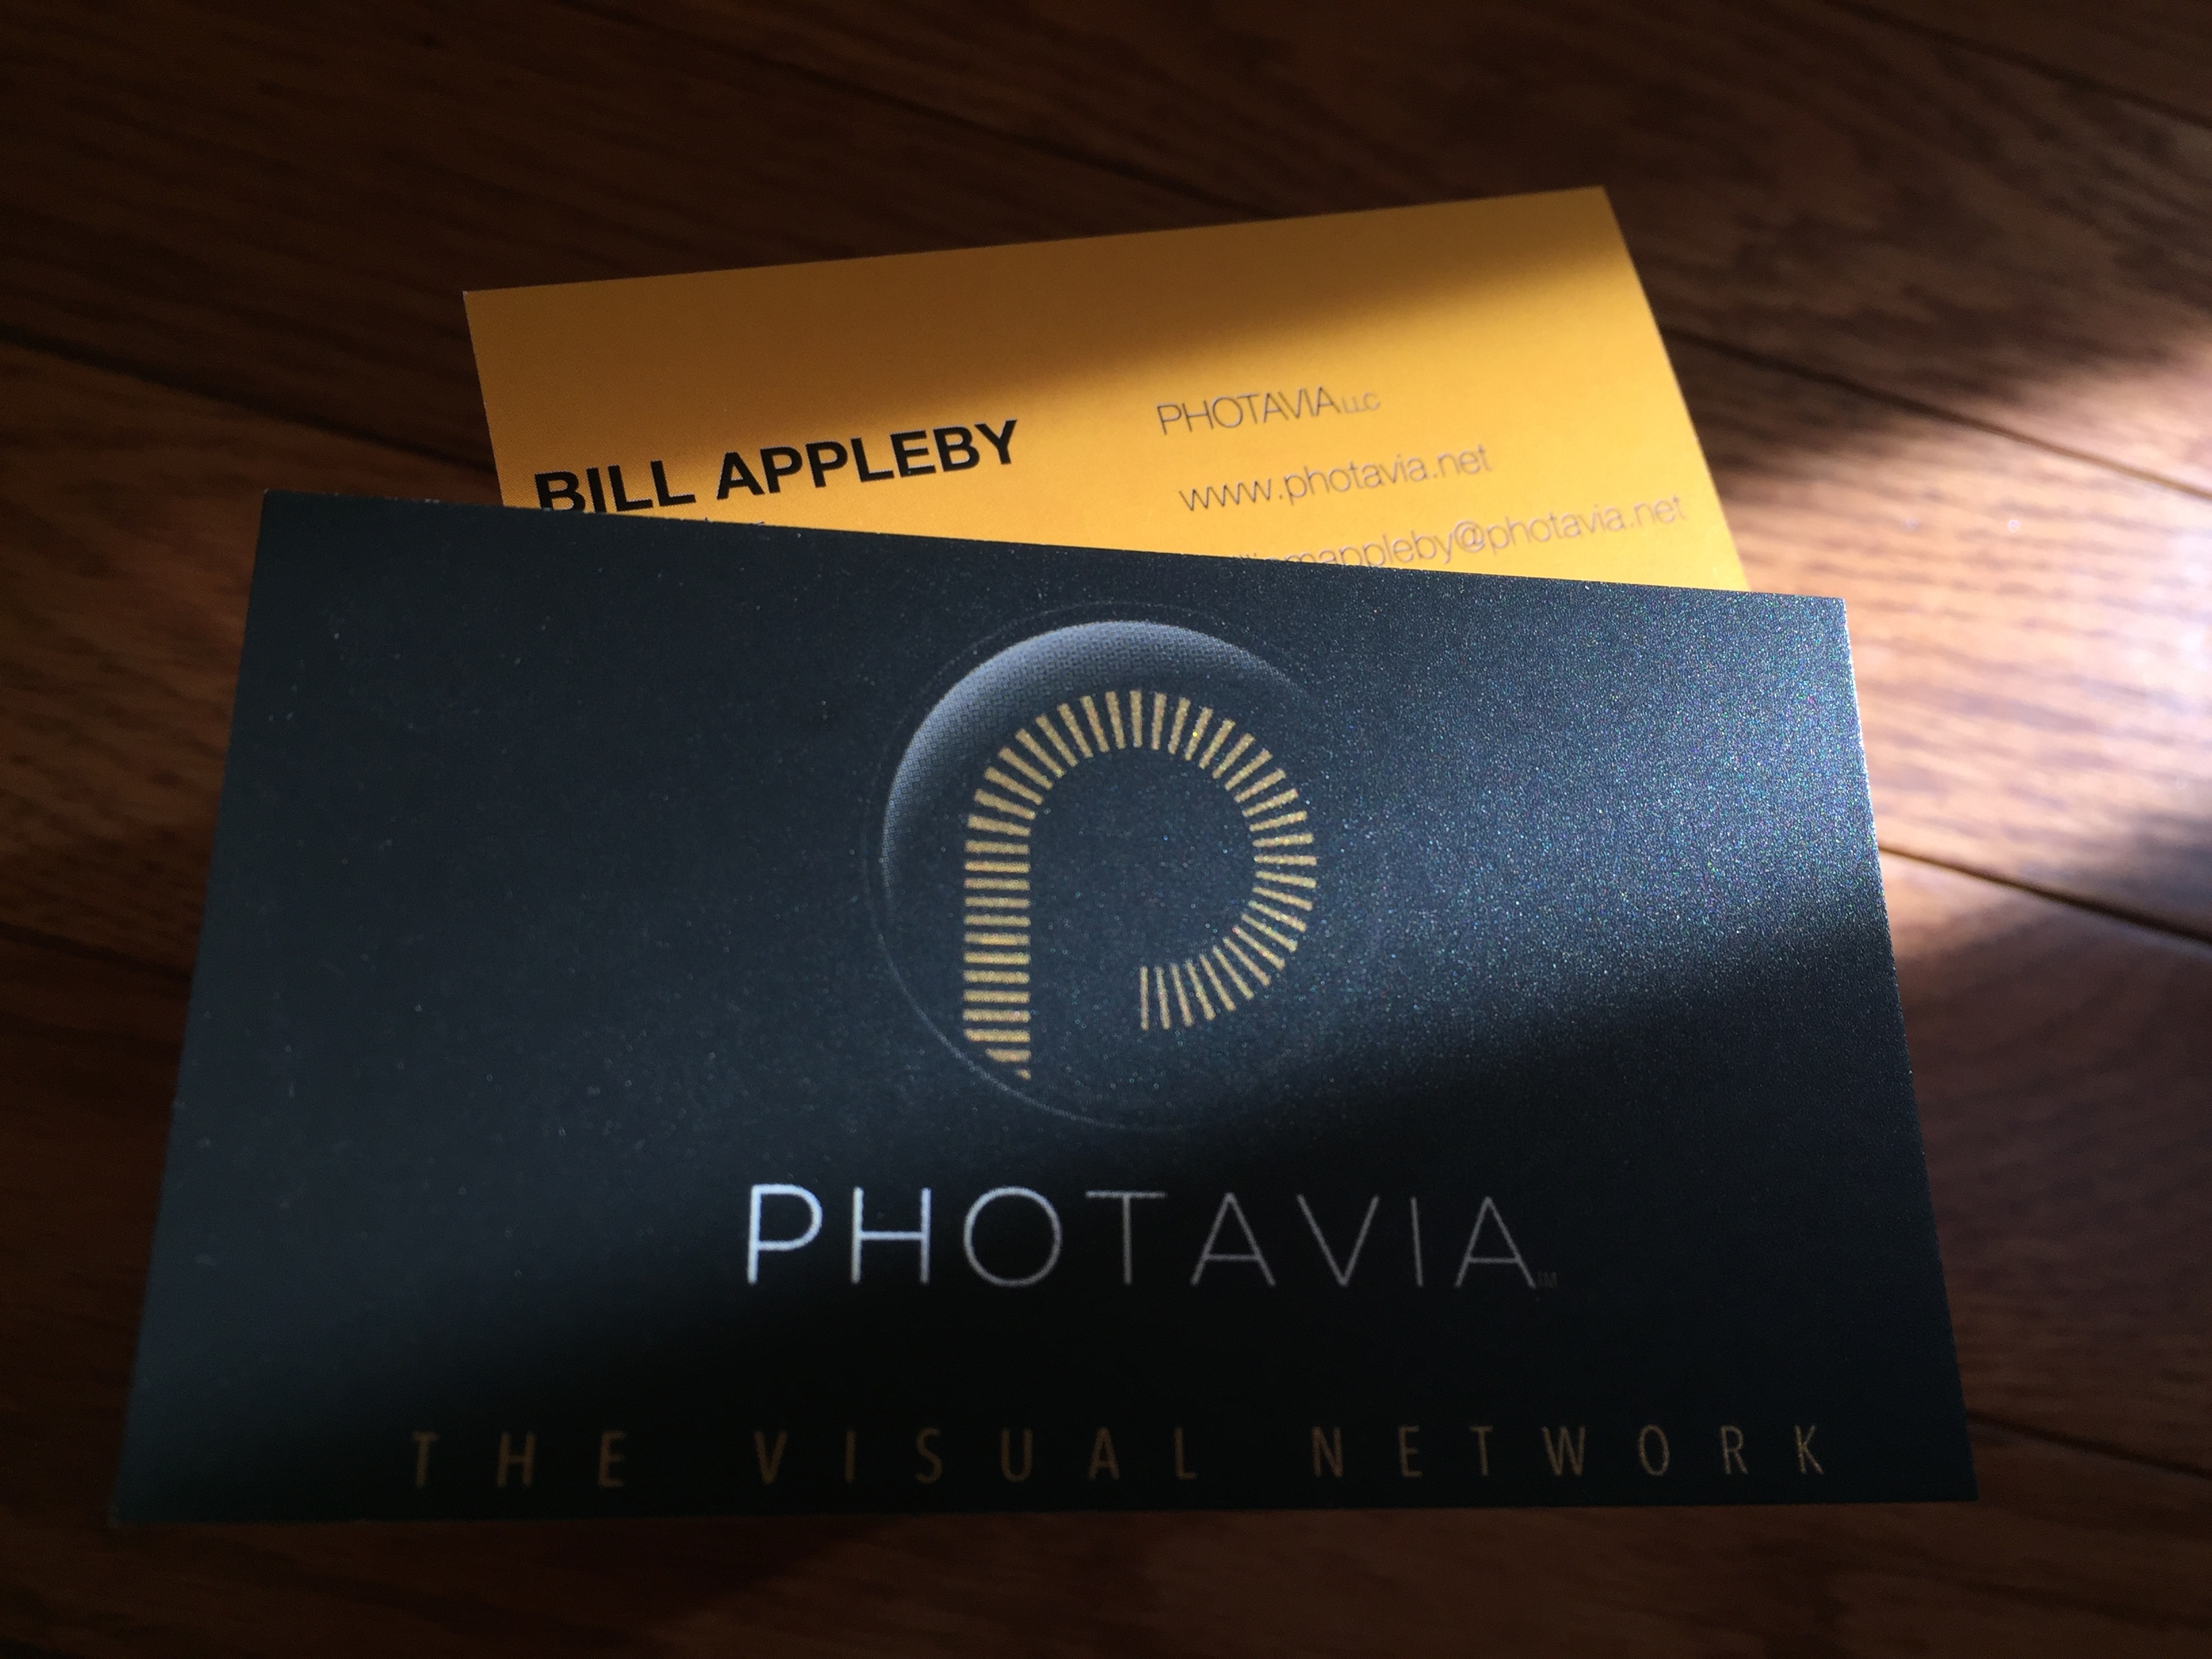 Photavia Brand and Business Card